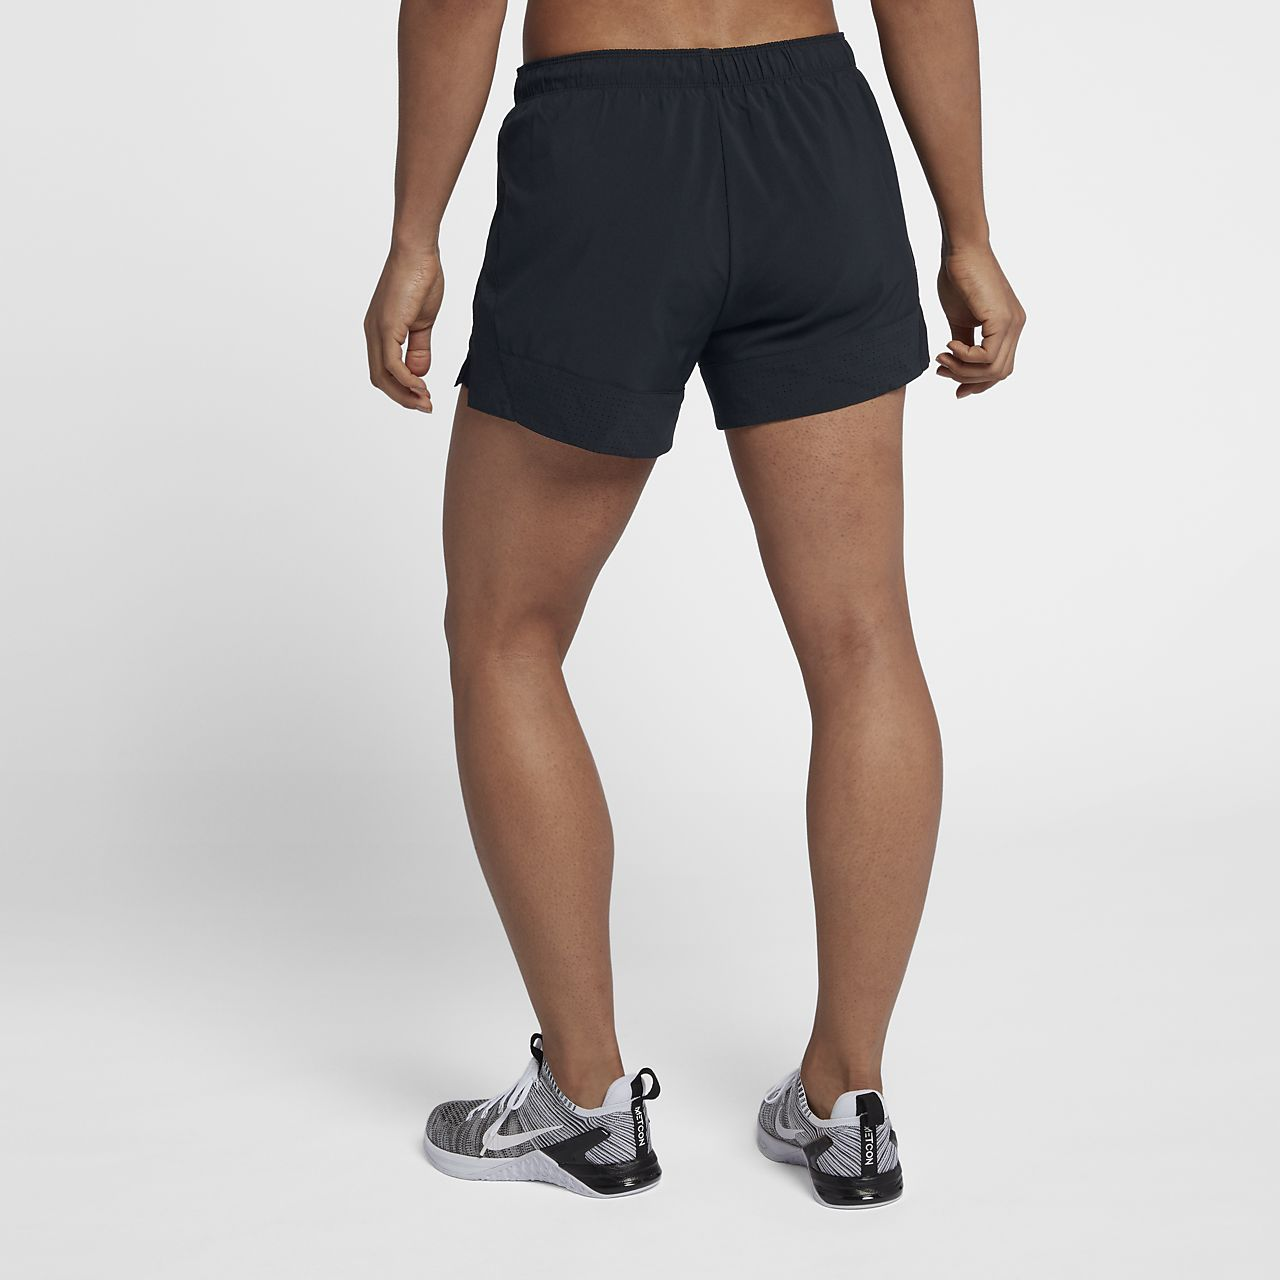 3b3fc631aa81d Nike Dri-FIT Flex 2-in-1 Women s Training Shorts. Nike.com AU